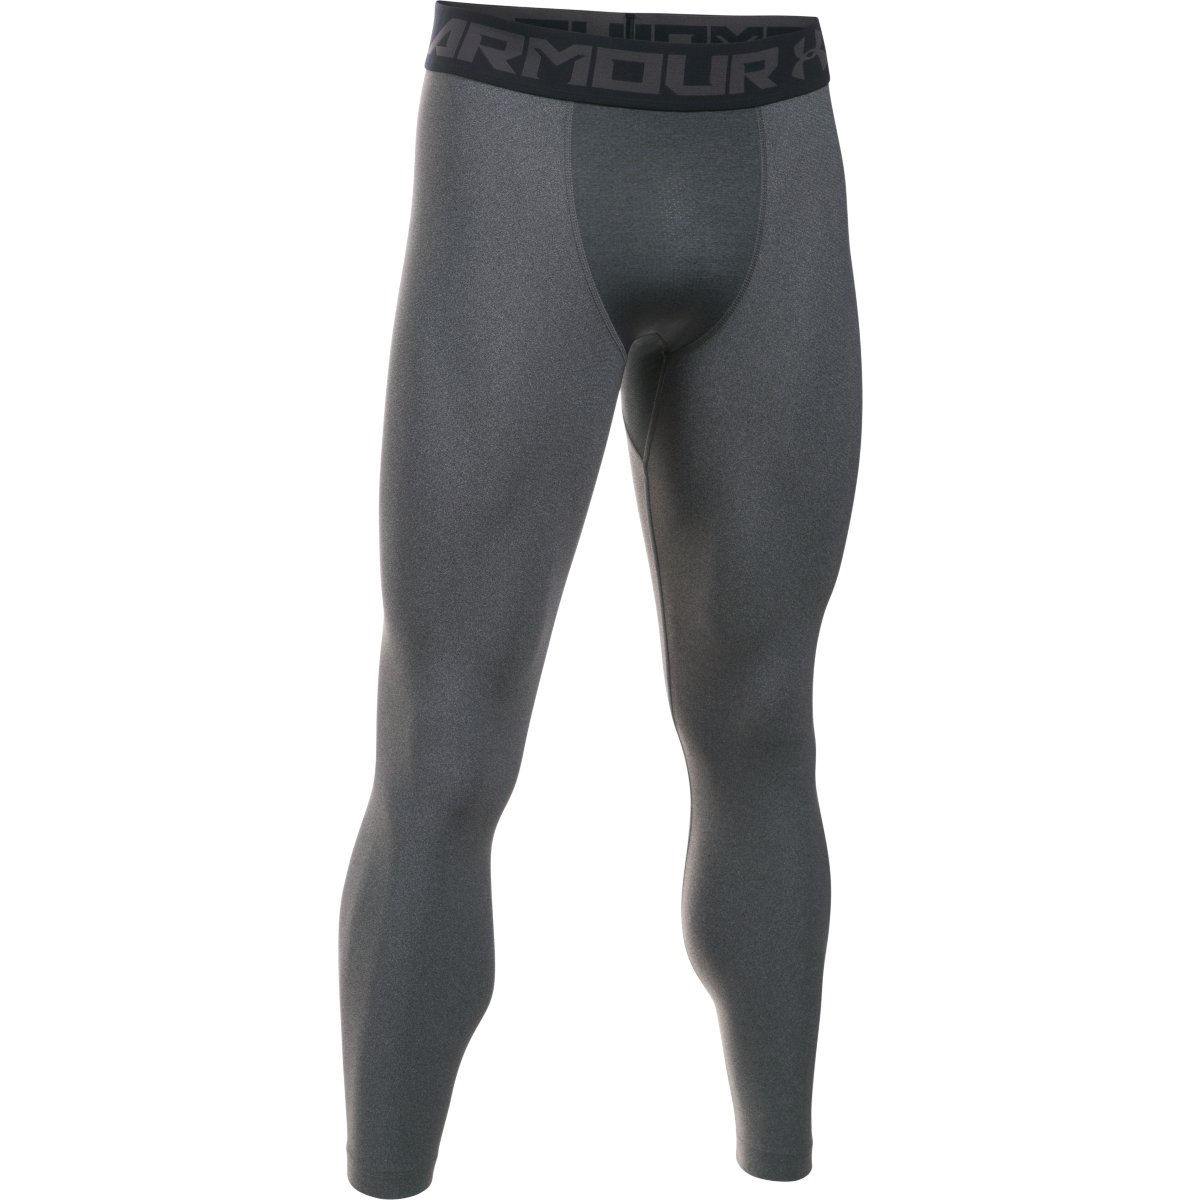 Lightweight Thermal Underwear with Tight Fit Design Comfortable Gym Leggings for Men Under Armour Men HeatGear 2.0